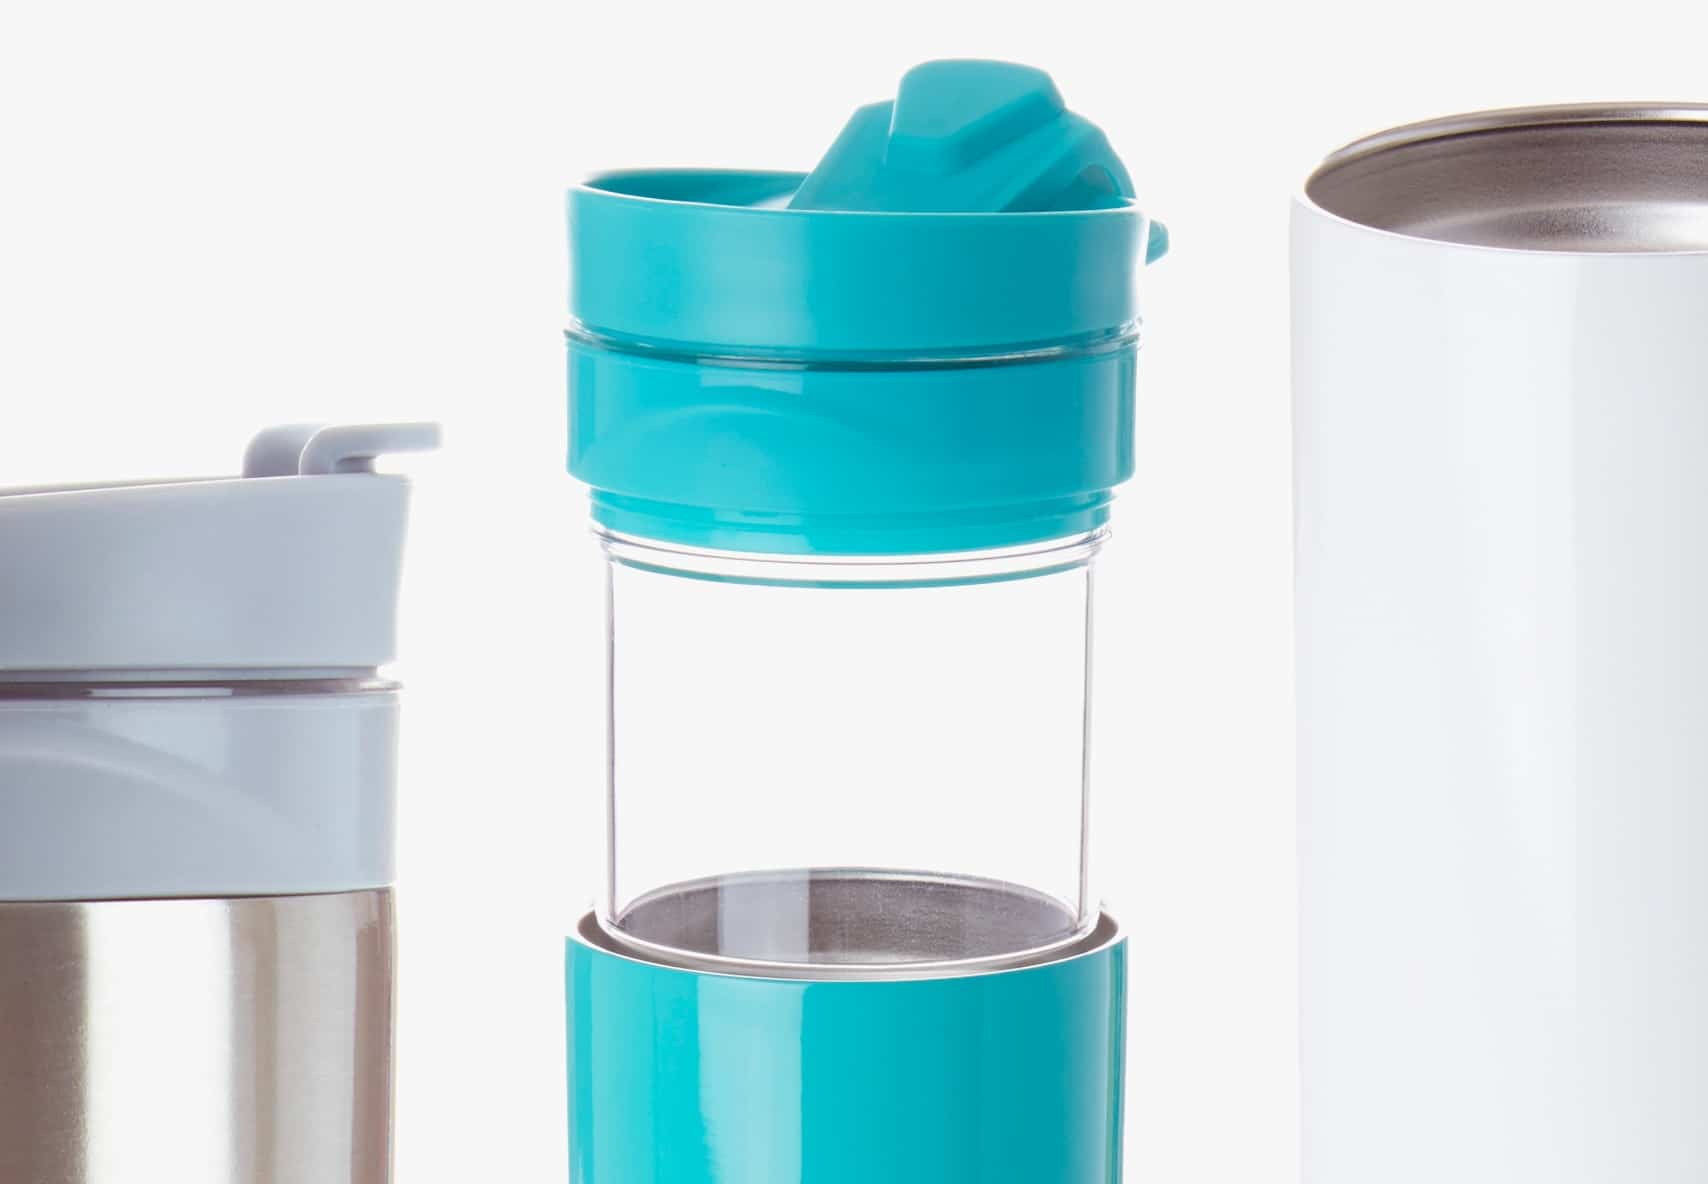 Three colourful travel mugs placed next to each other.